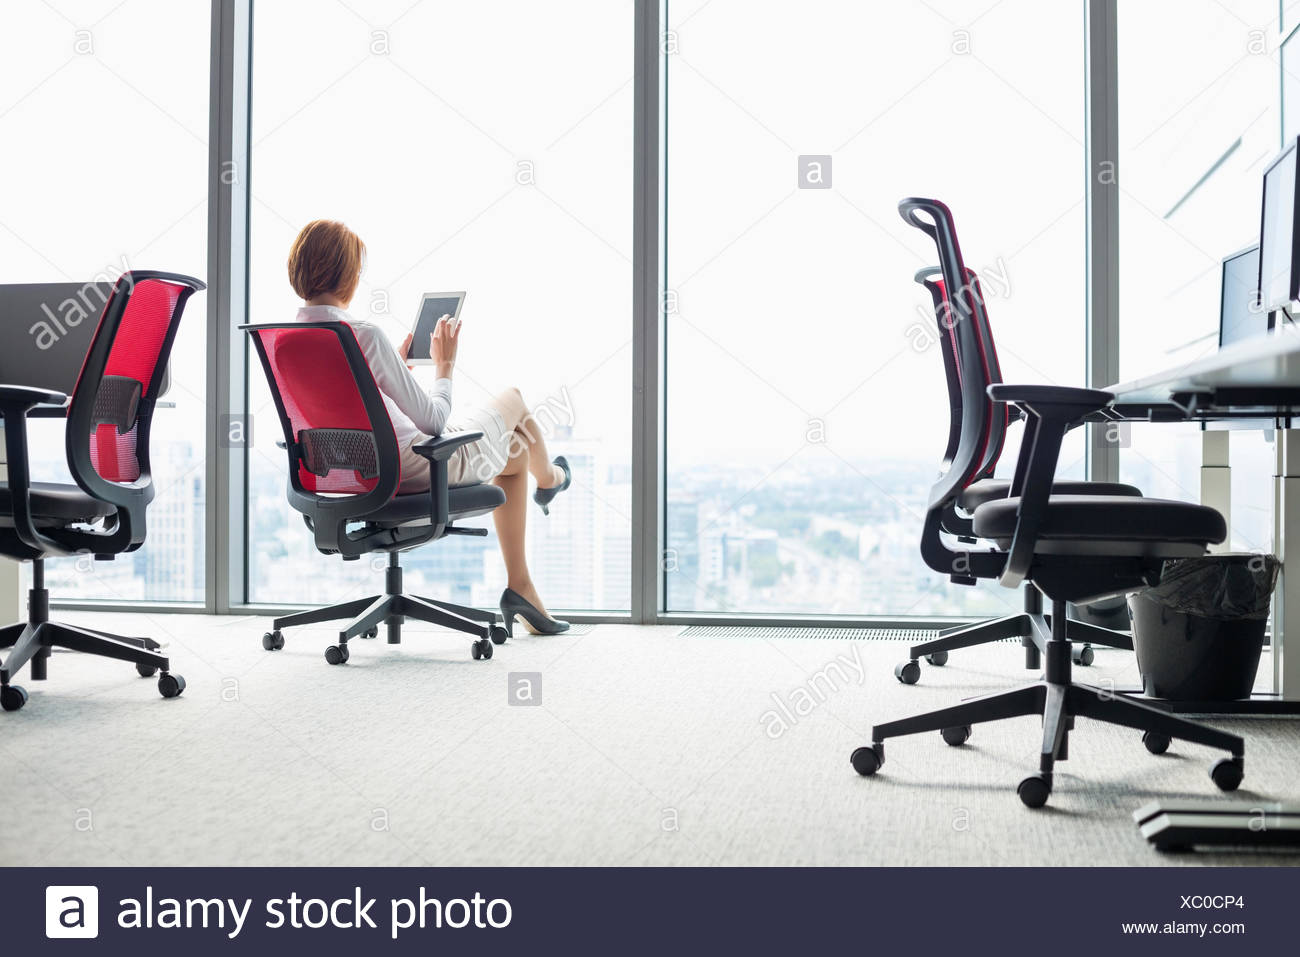 Full length of young businesswoman using tablet PC on chair in office - Stock Image